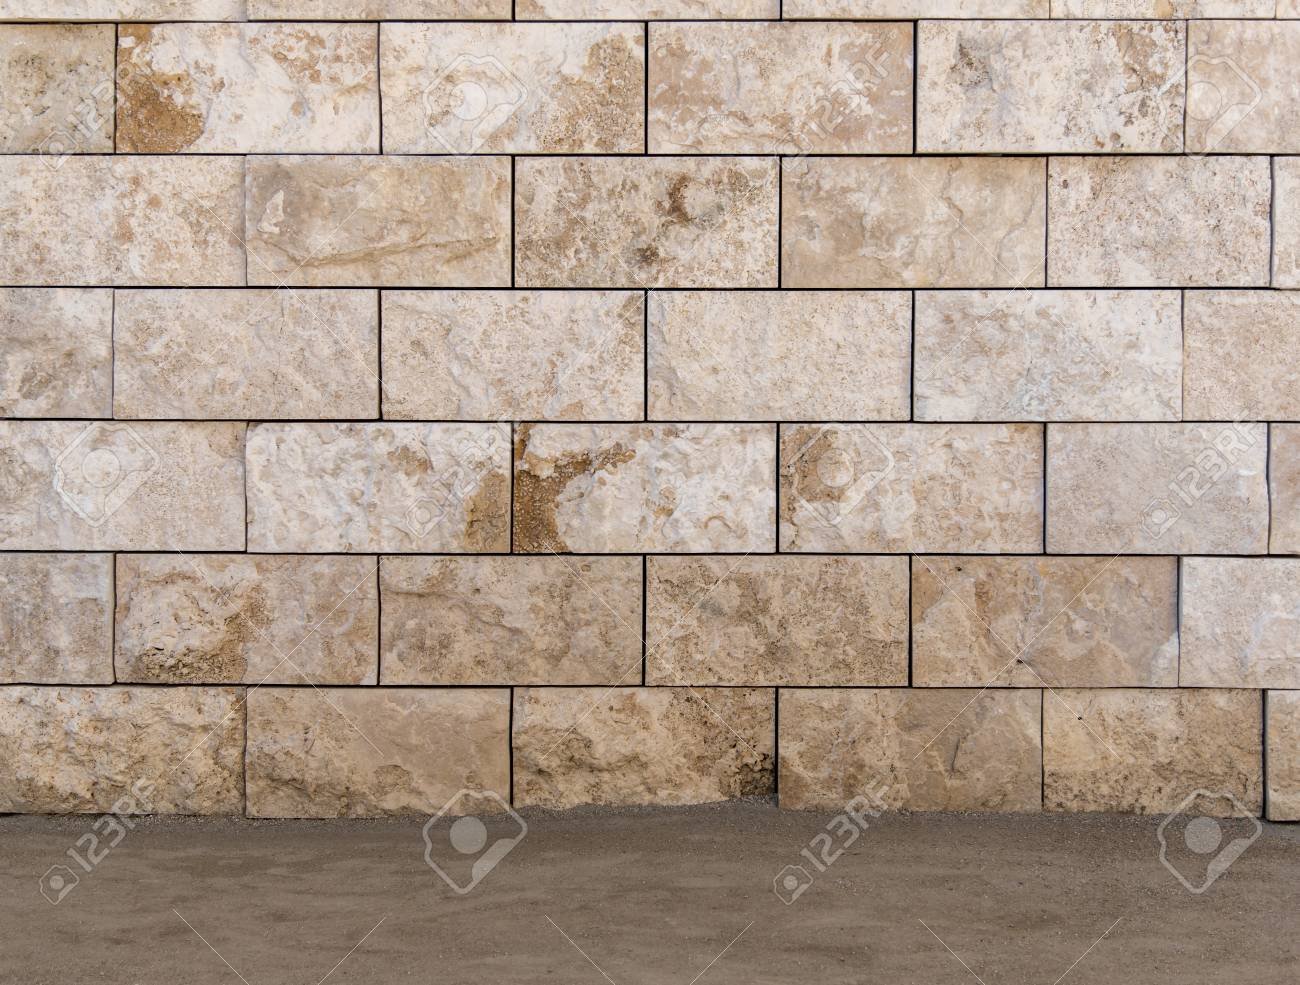 Rustic scratched concrete wall texture background - 115023923